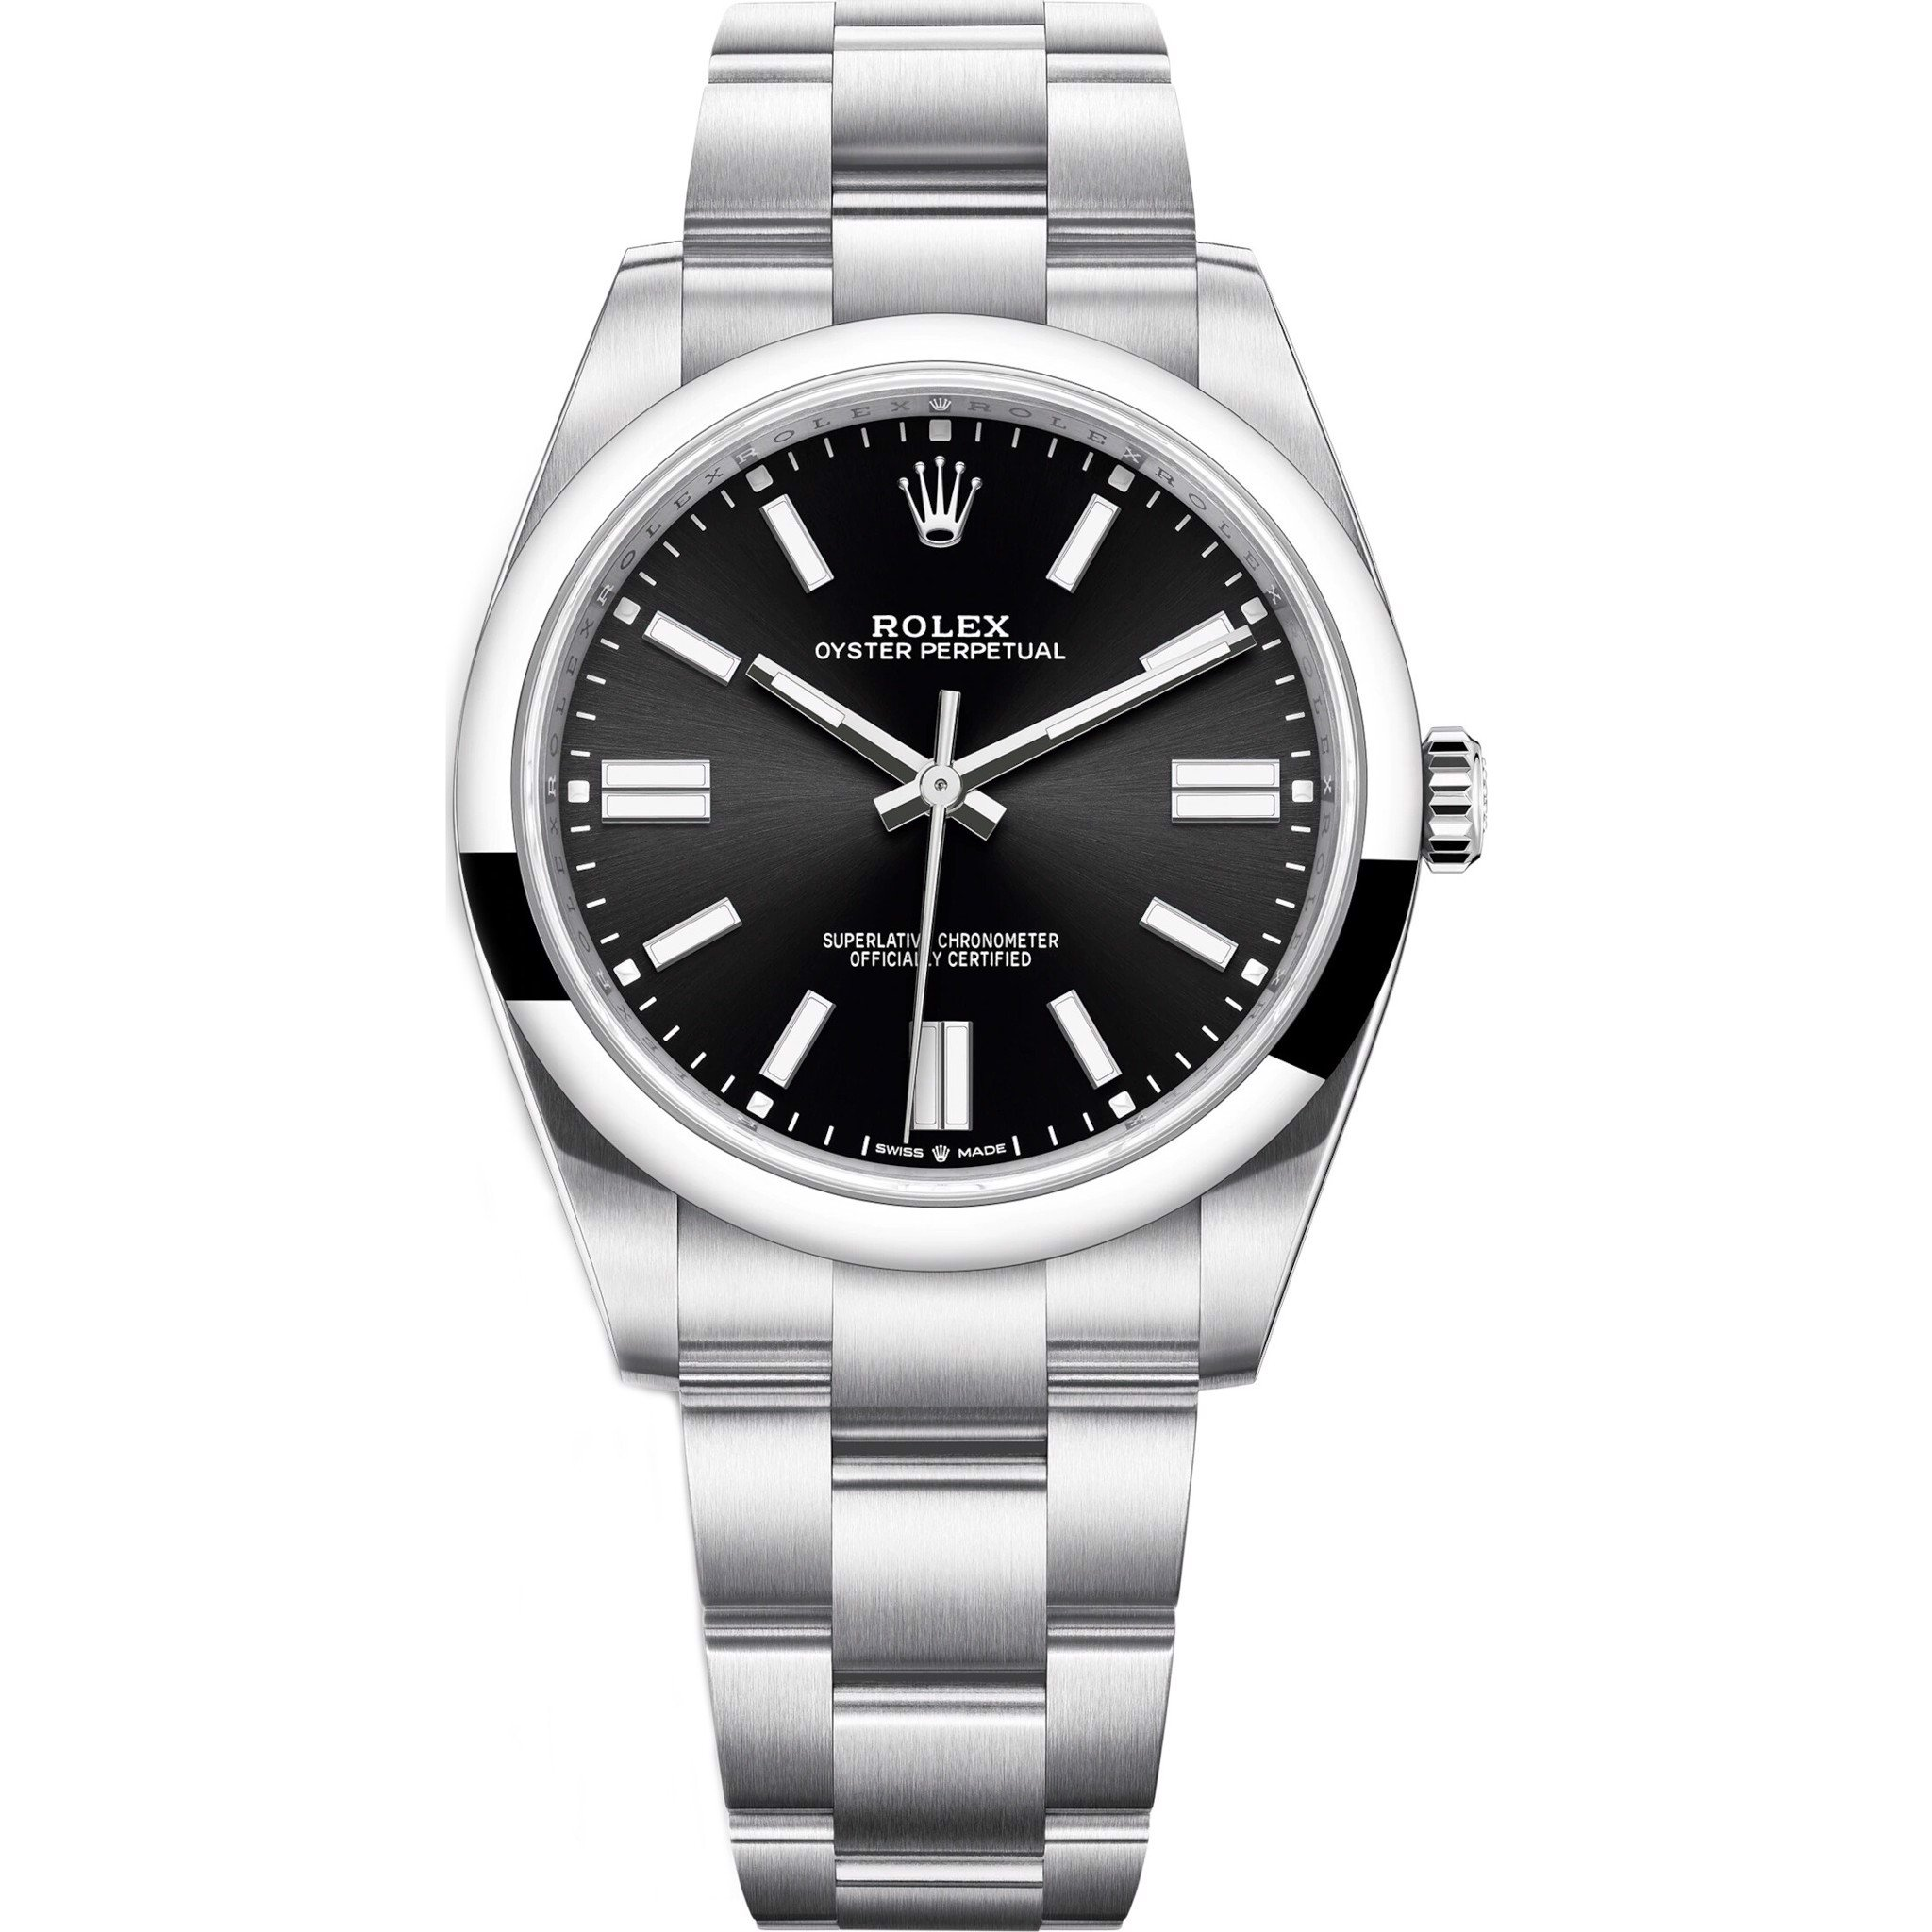 Rolex Oyster Perpetual 124300-0002 Watch 41mm